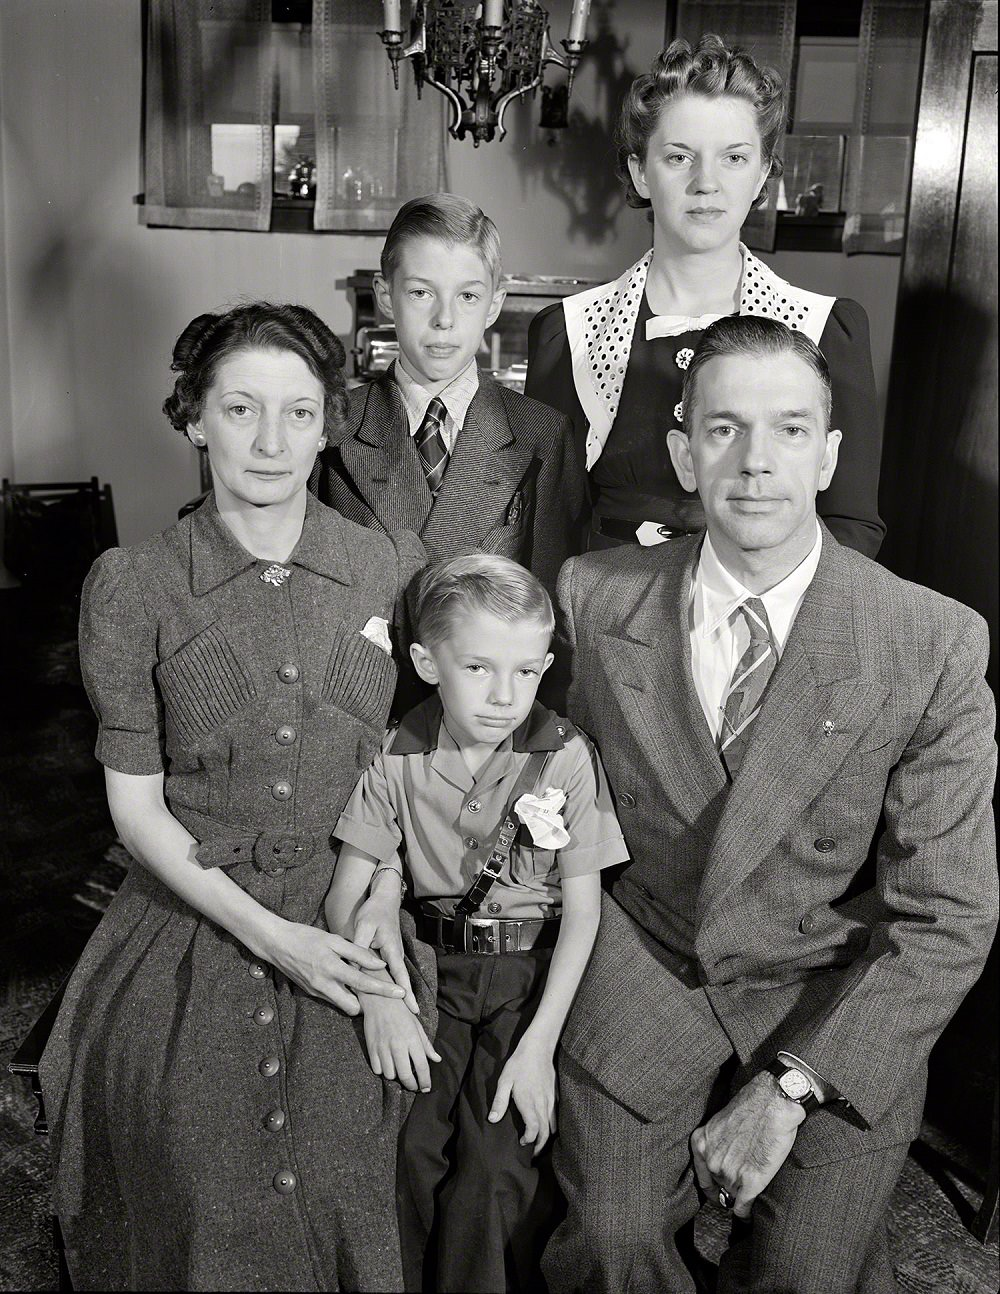 The Babcocks, a typical American war worker's family, New York, September 1942